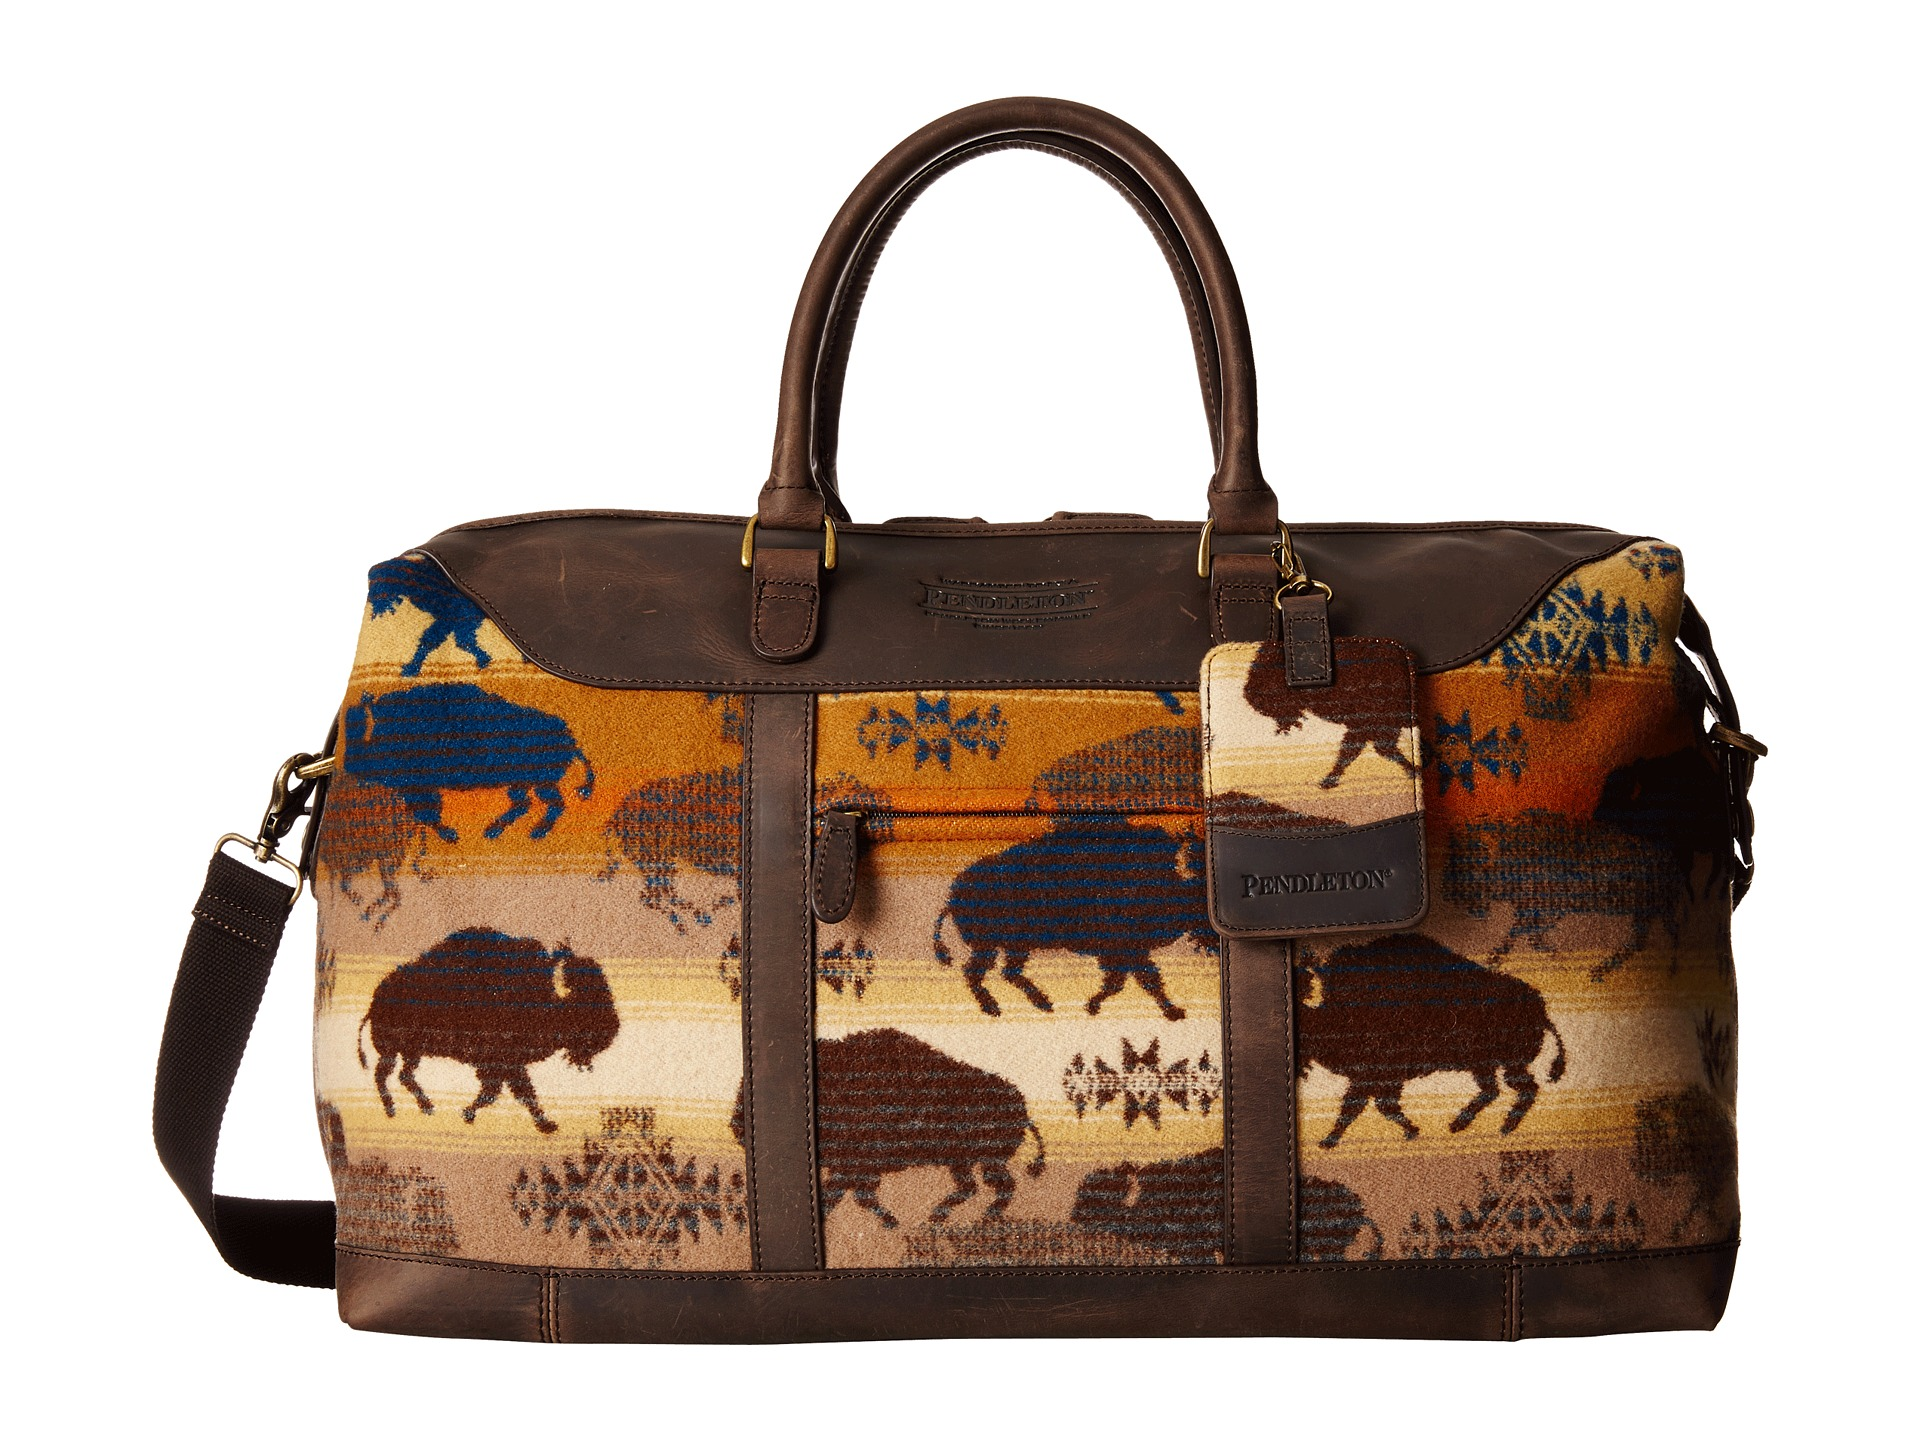 Shop bags from Pendleton, including premium wool bags, durable travel bags, stylish wool tote bags & more.